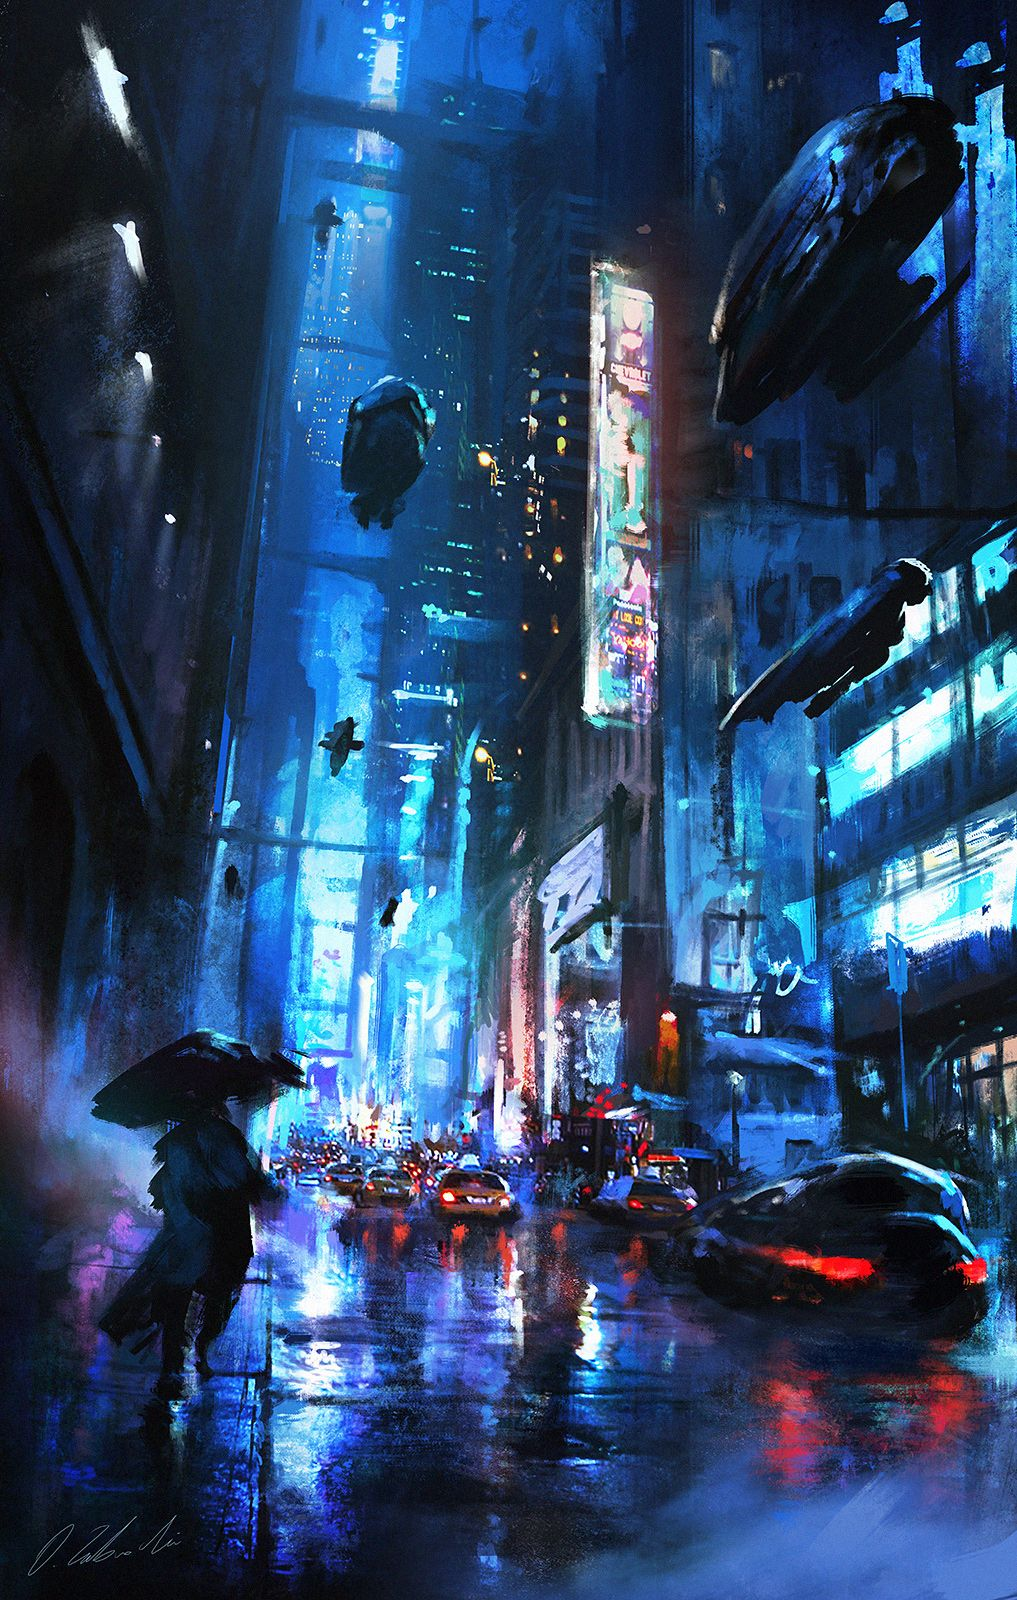 Walking On The Street By Daroz Blade Runner Cyberpunk Landscape Location Environment Architecture Create Your Own Roleplaying Futurisme Cyberpunk Nachtleven